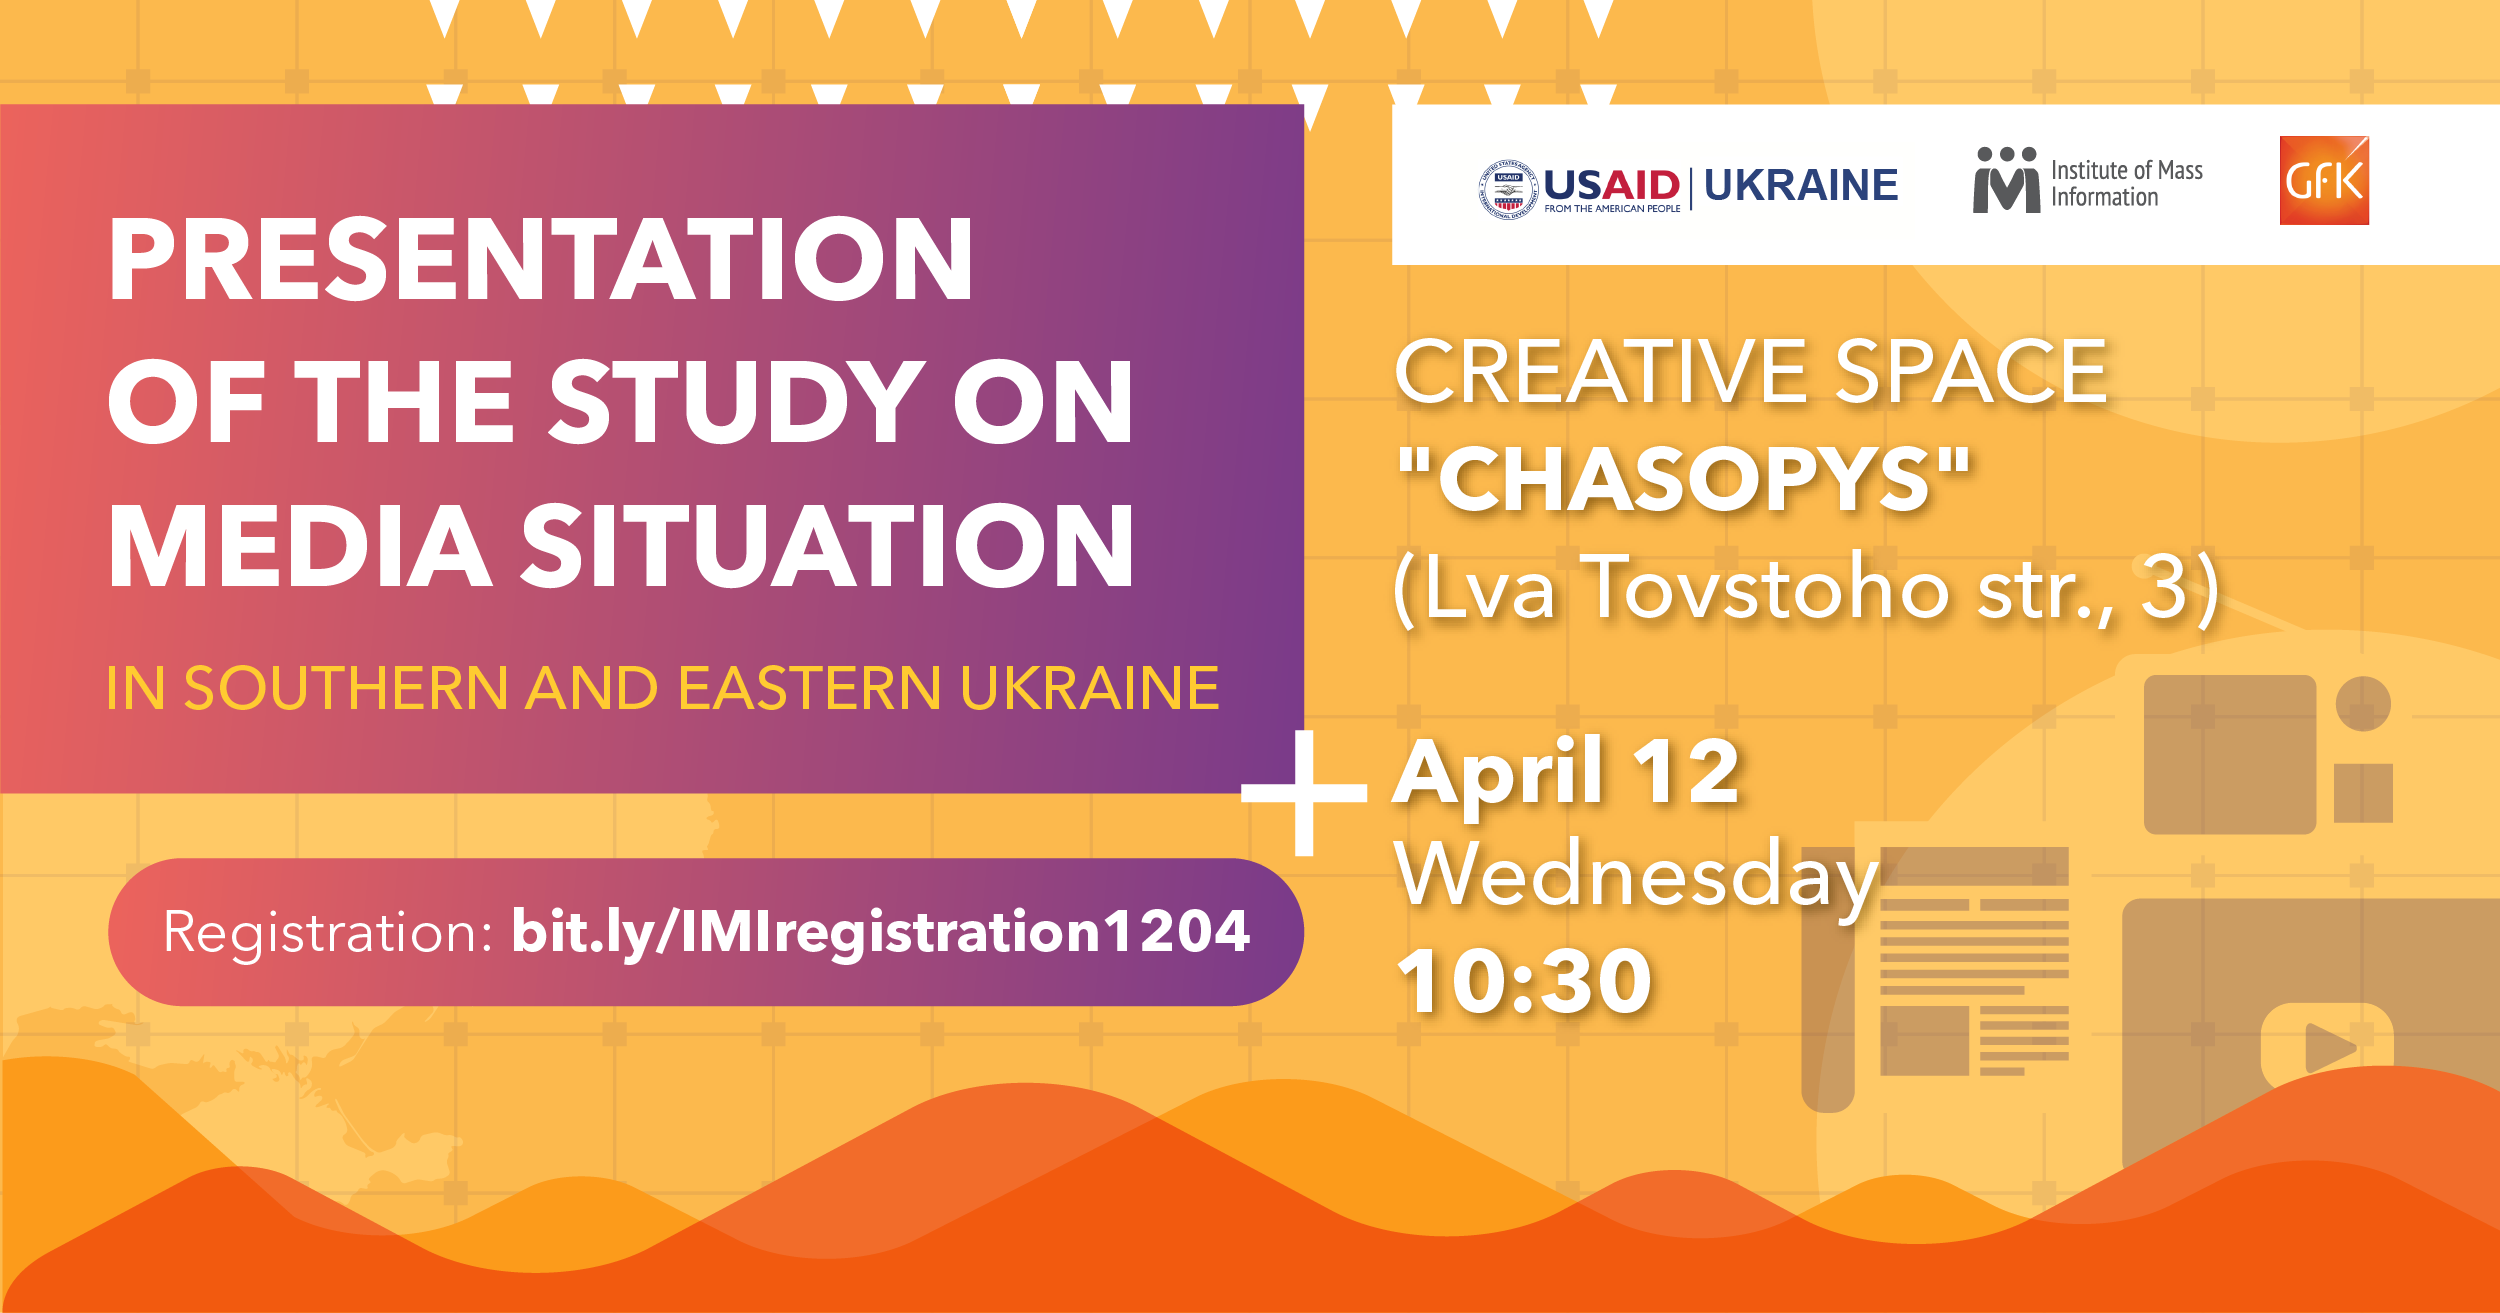 In Kyiv, IMI and GfK present research of media situation in